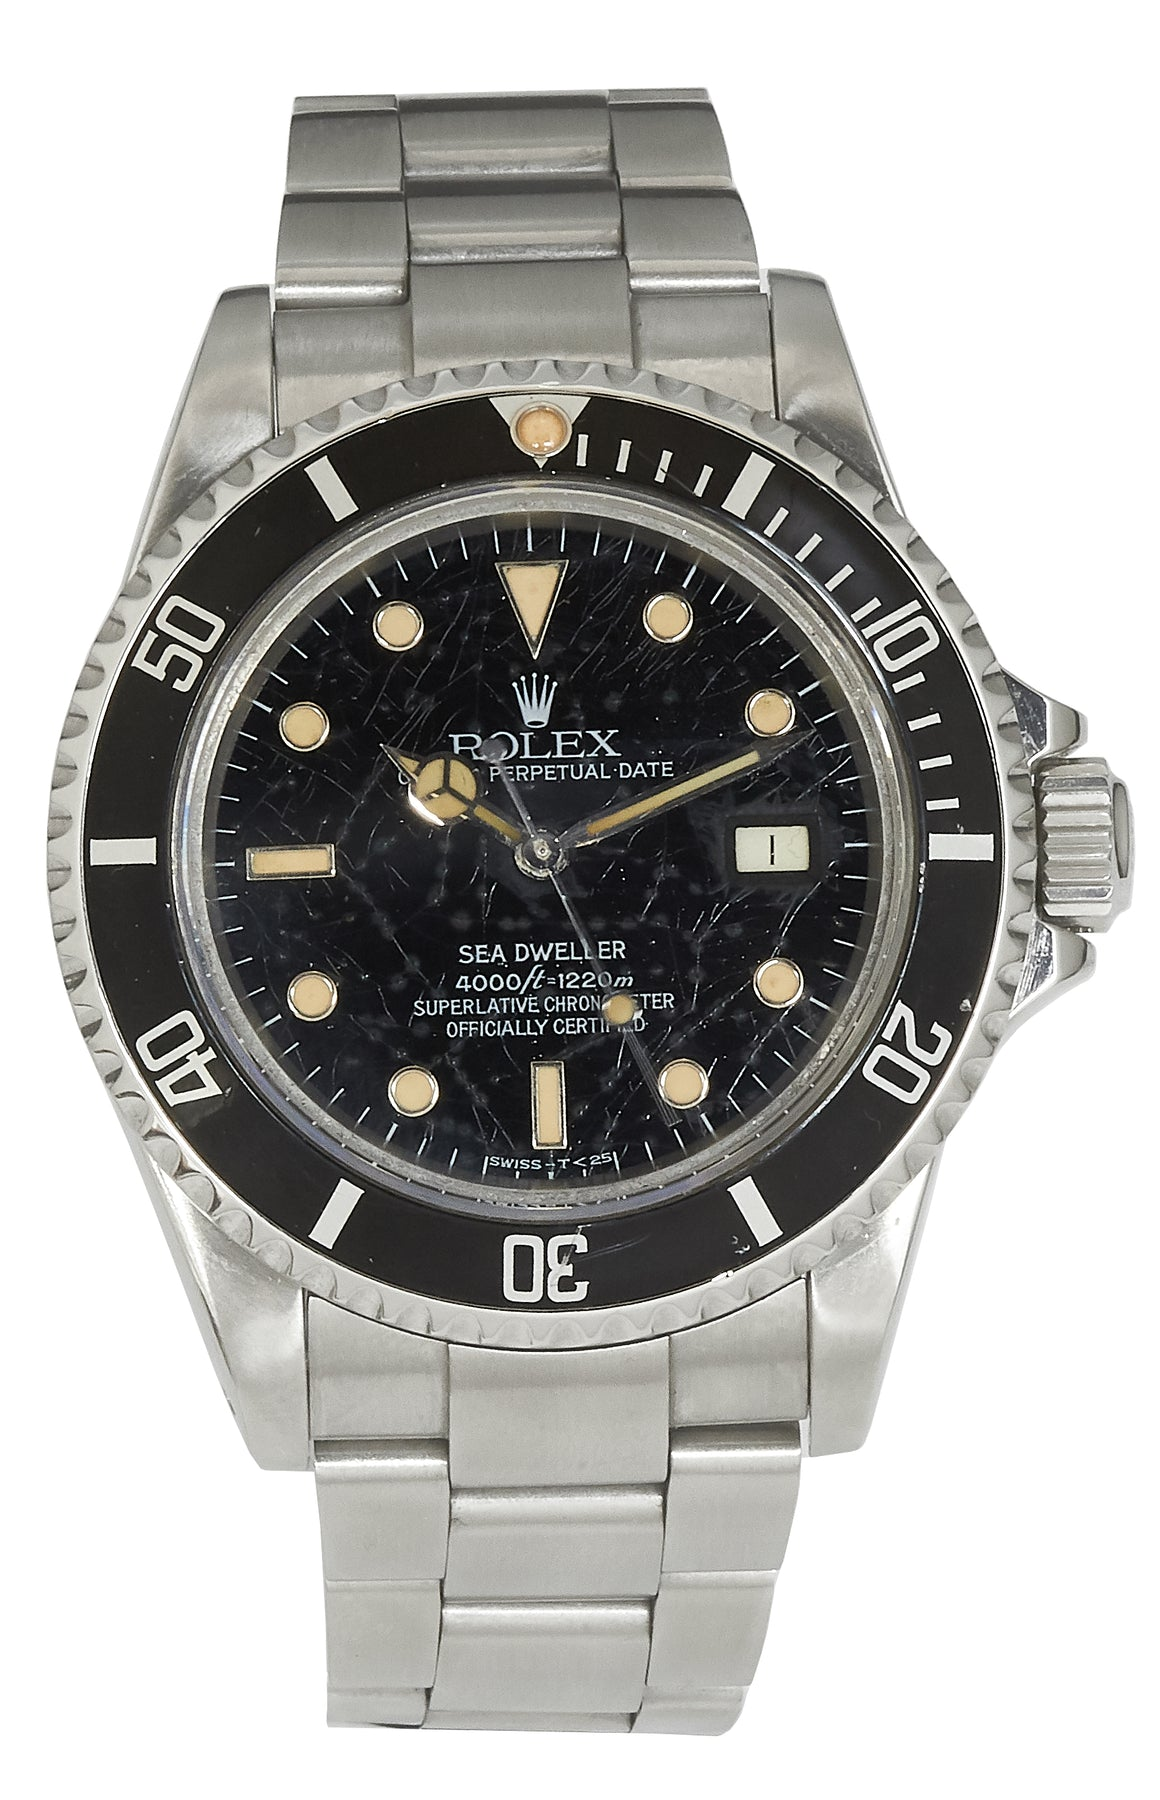 Rolex Sea-Dweller, Triple 6, Spider Dial with Patina. Ref: 16660